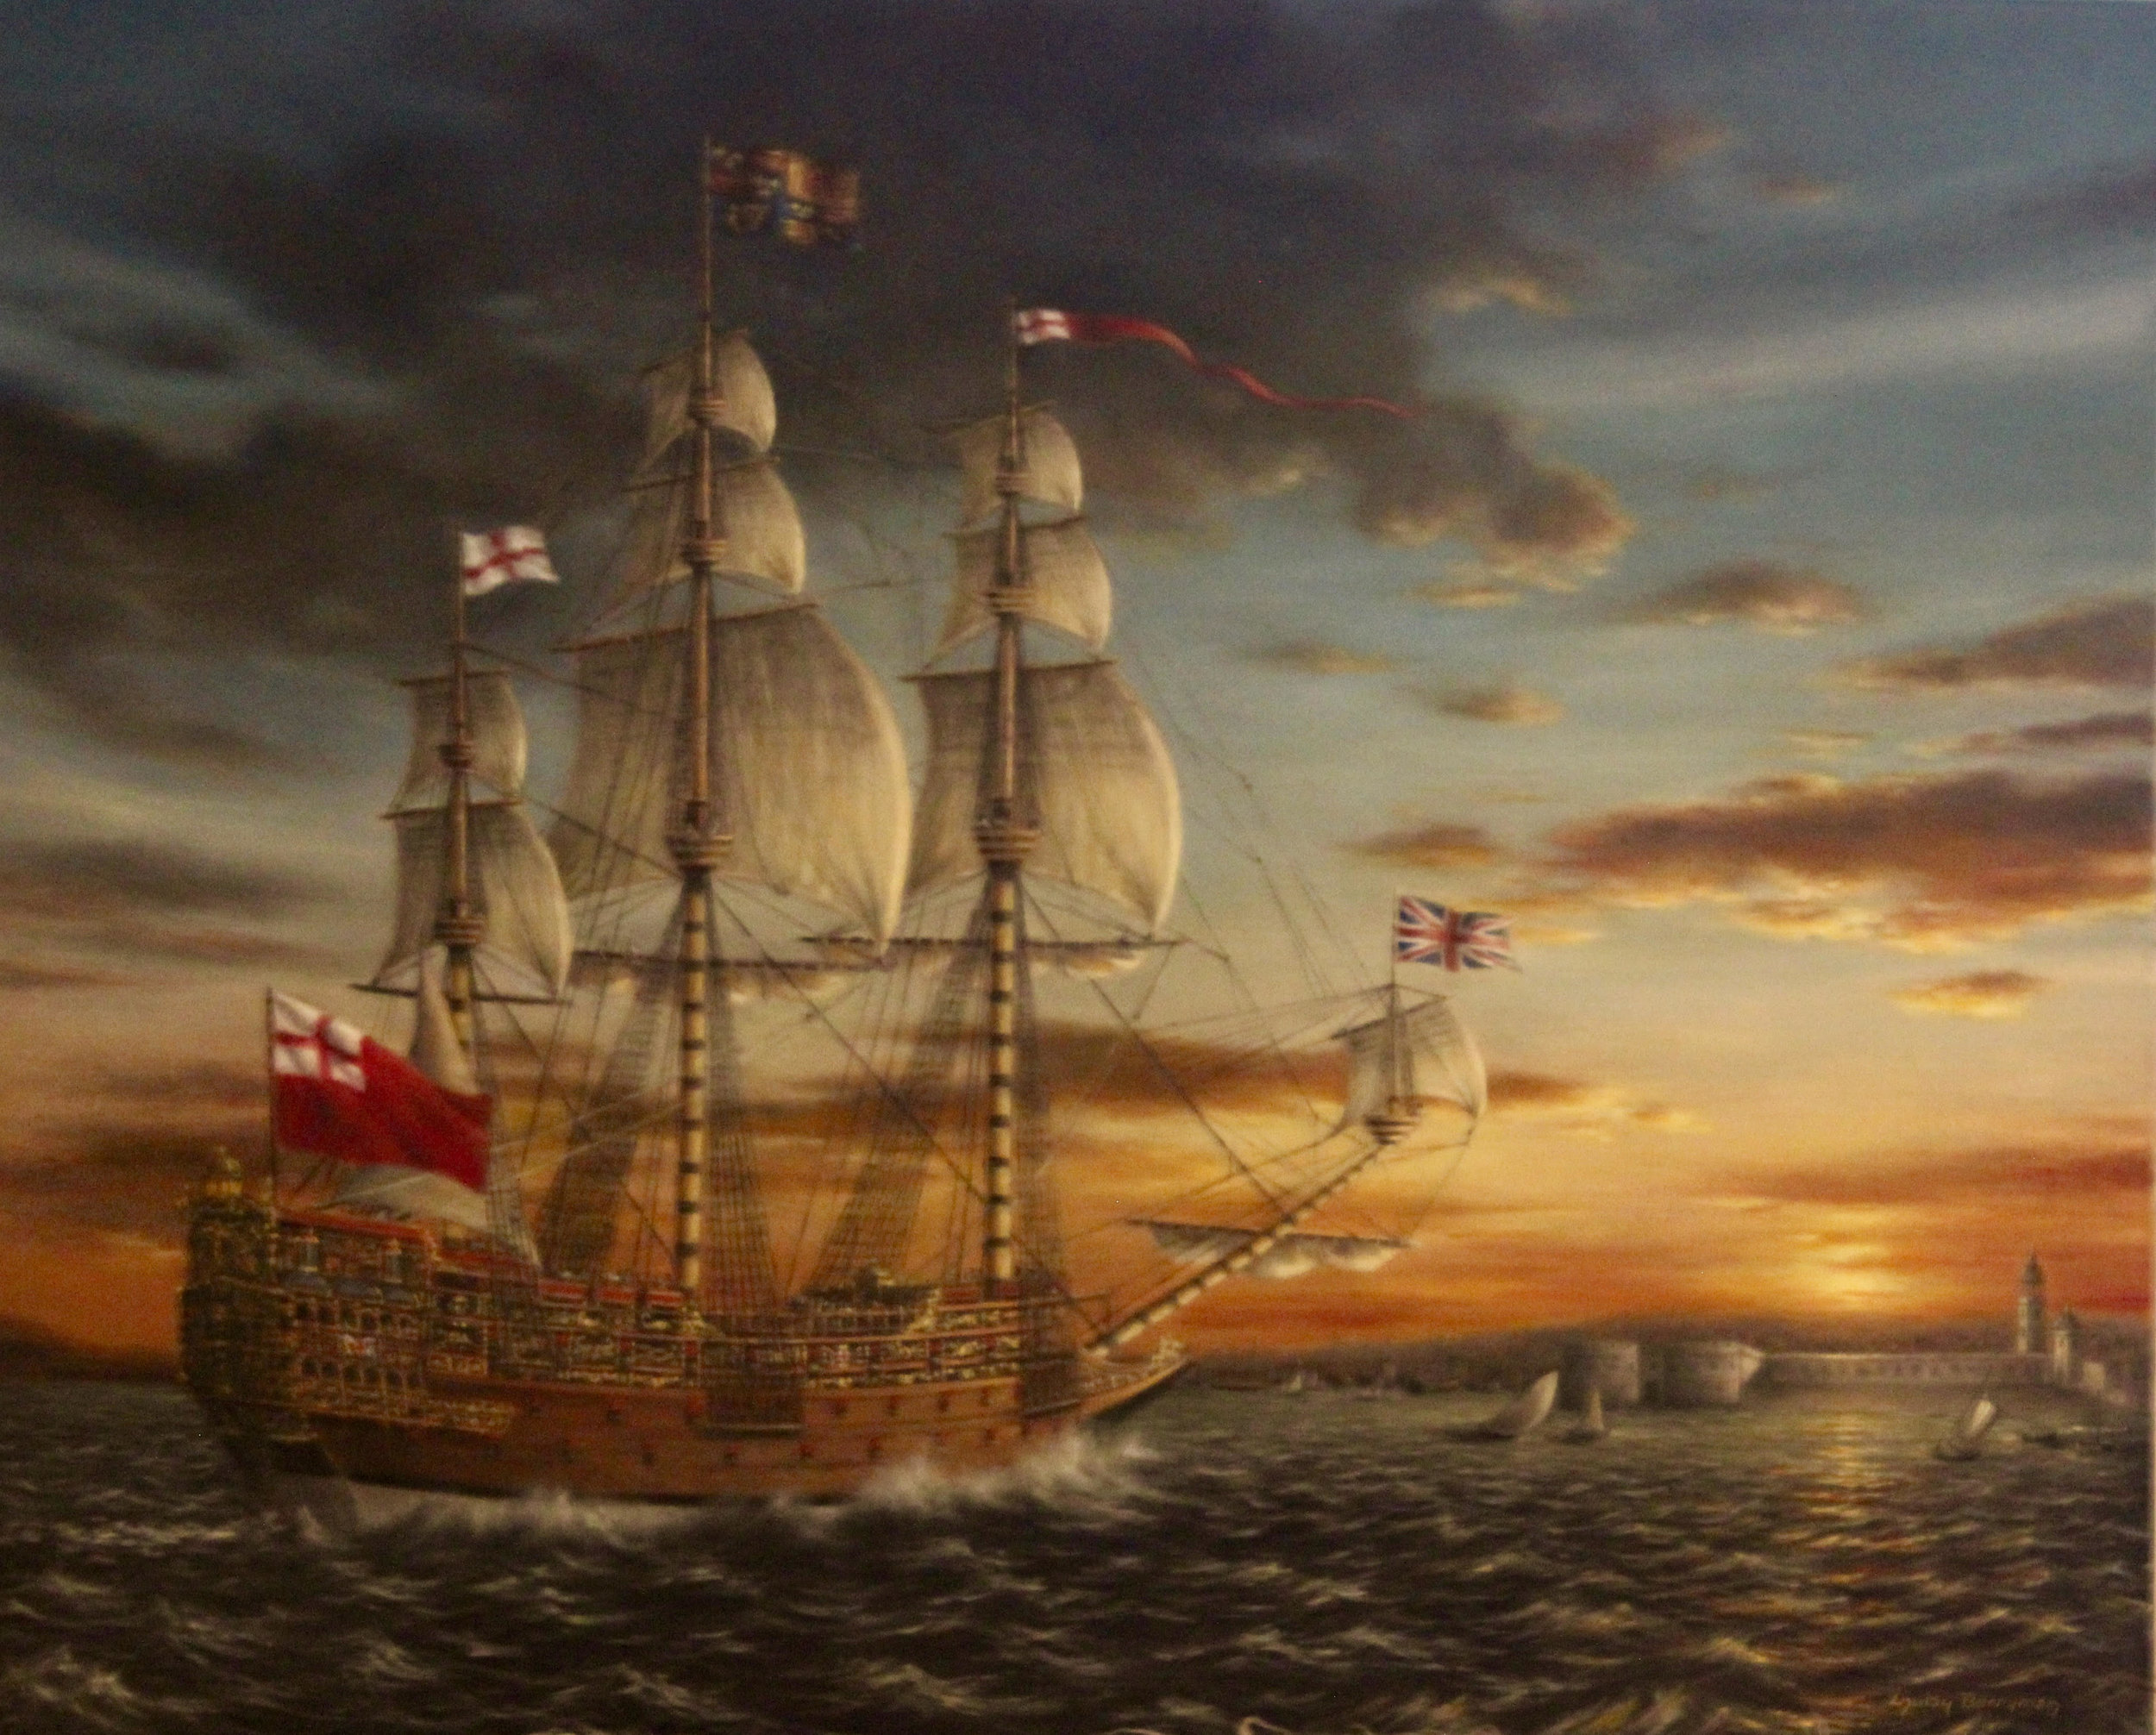 The 'Sovereign of the Seas' Returns to Portsmouth  (currently available on www.wmbgartgallery.com)